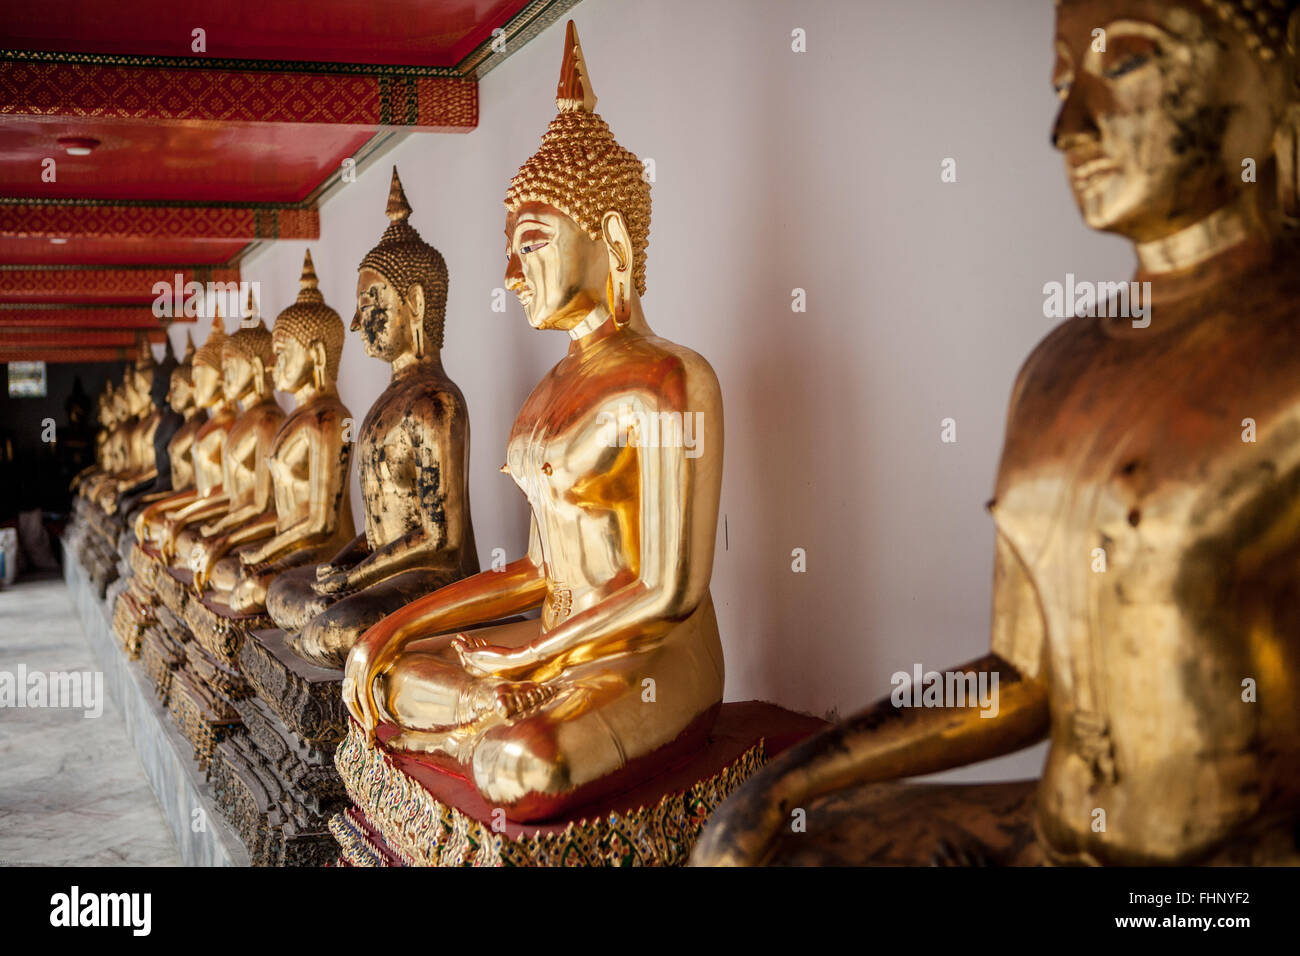 A row of seated, golden buddha statues at Wat Pho, a famous temple in Bangkok, Thailand - Stock Image